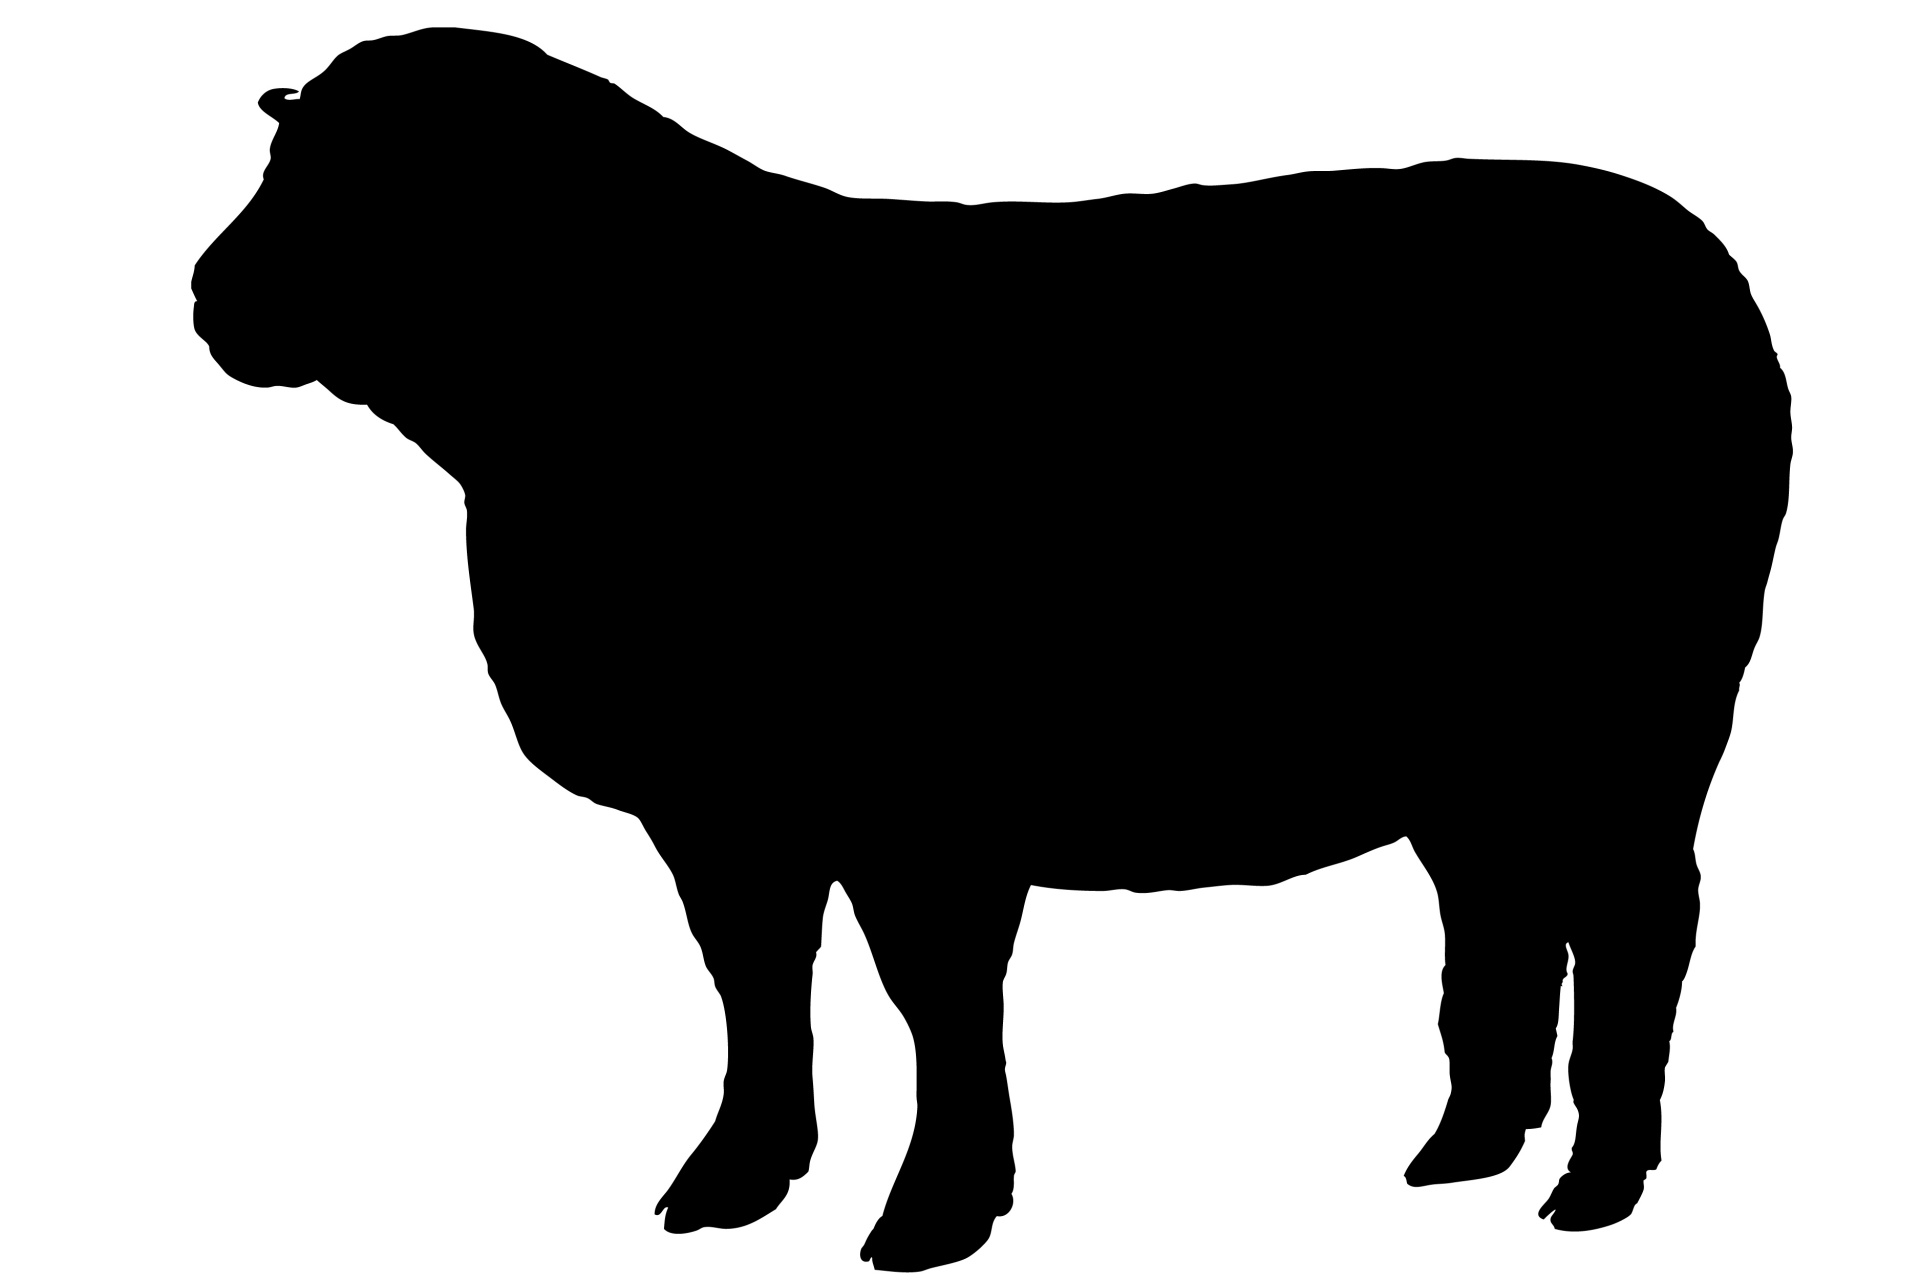 1920x1280 Sheep Black Silhouette Free Stock Photo